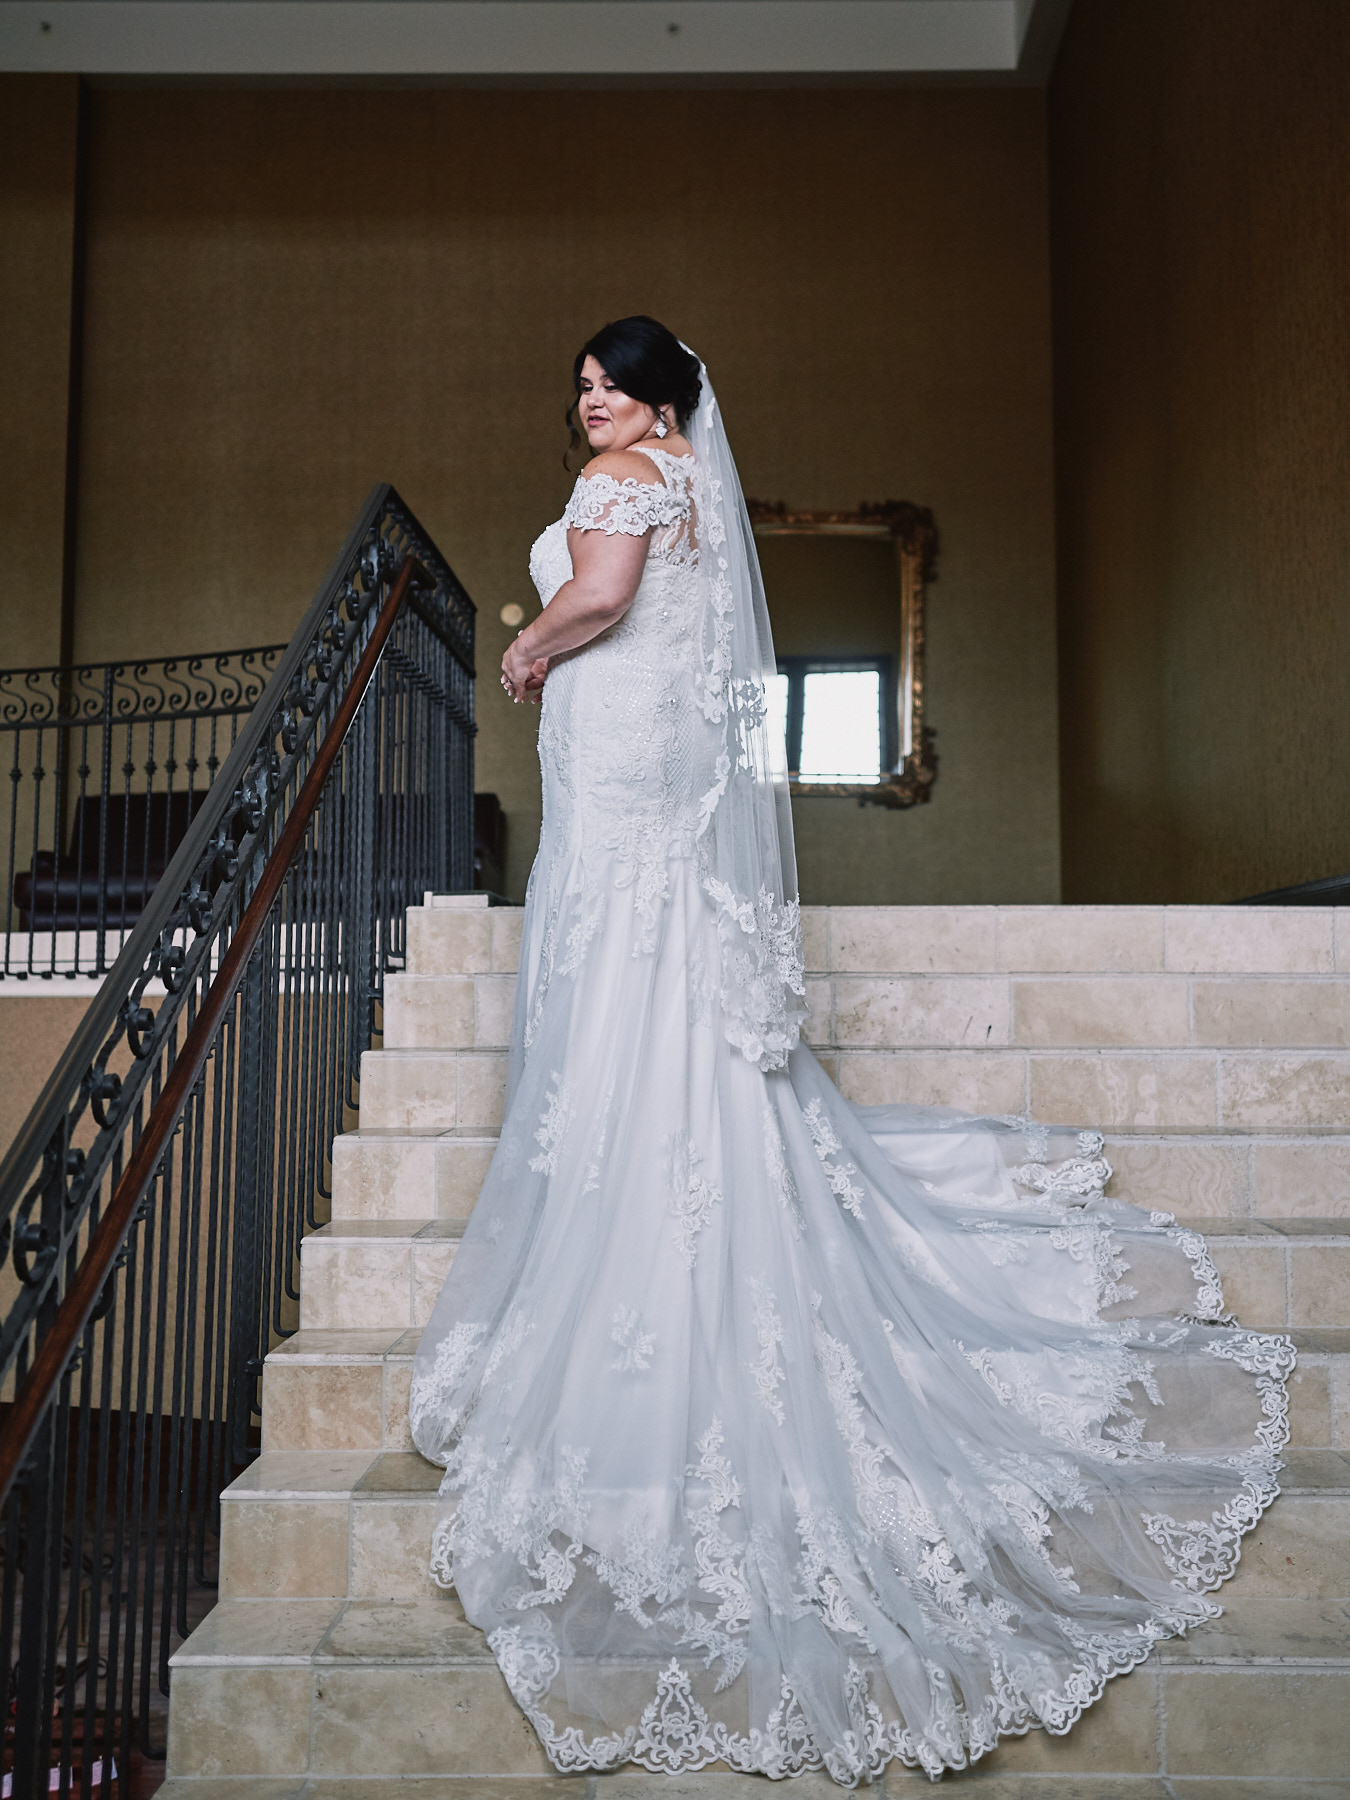 Diamond Mills Hotel wedding portrait